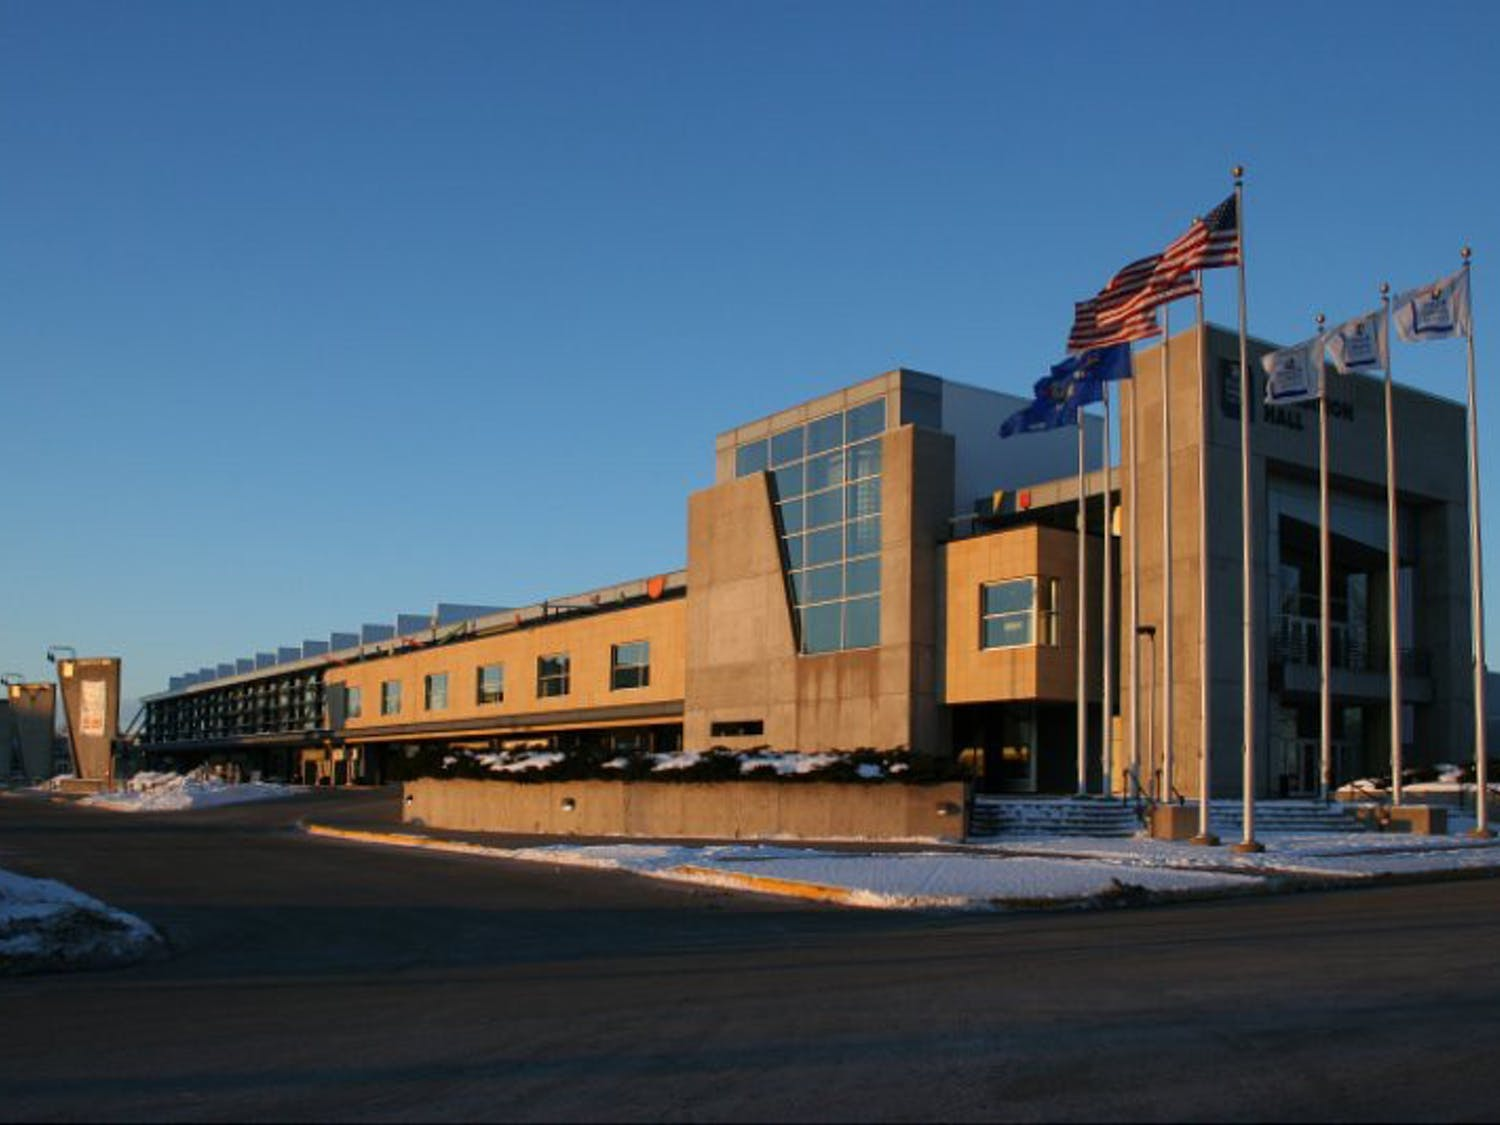 The Alliant Energy Center currently hosts around 500 events a year, according to the report.